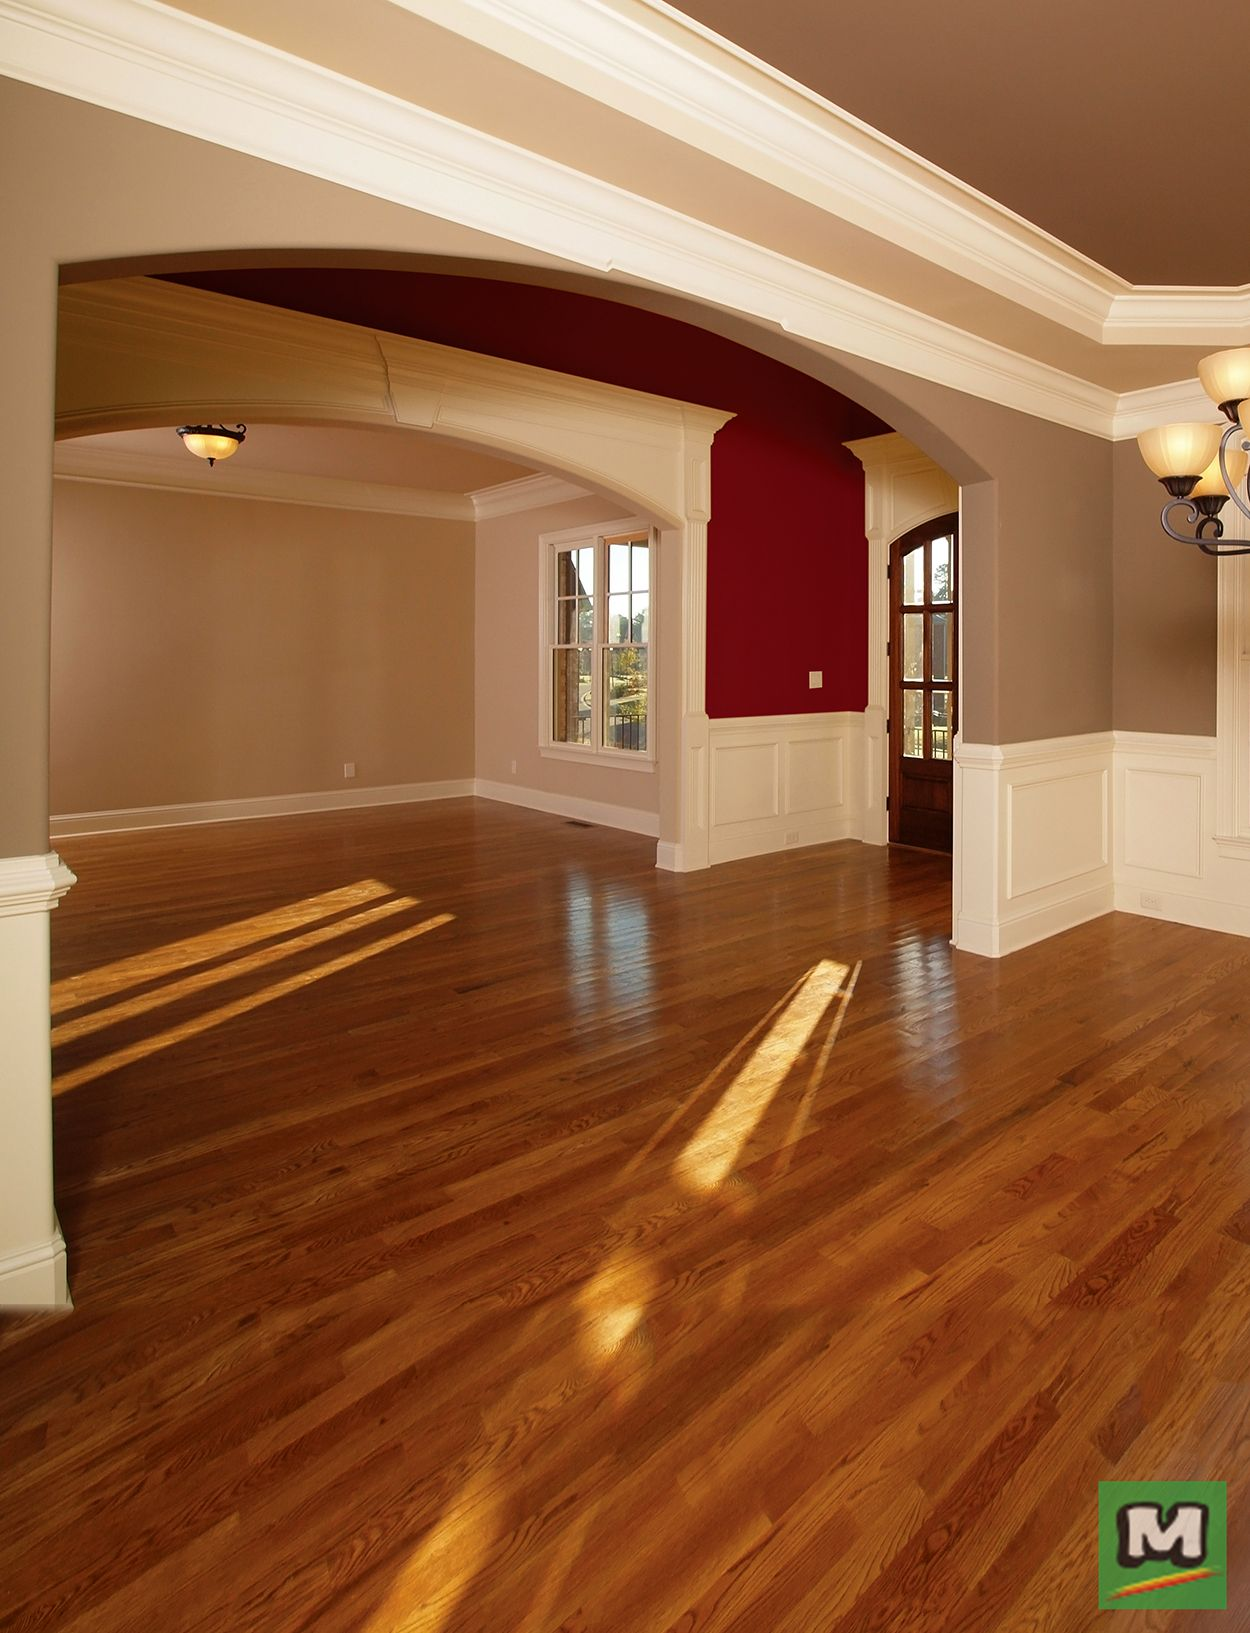 Minwax Super Fast Drying Polyurethane For Floors Is A Durable